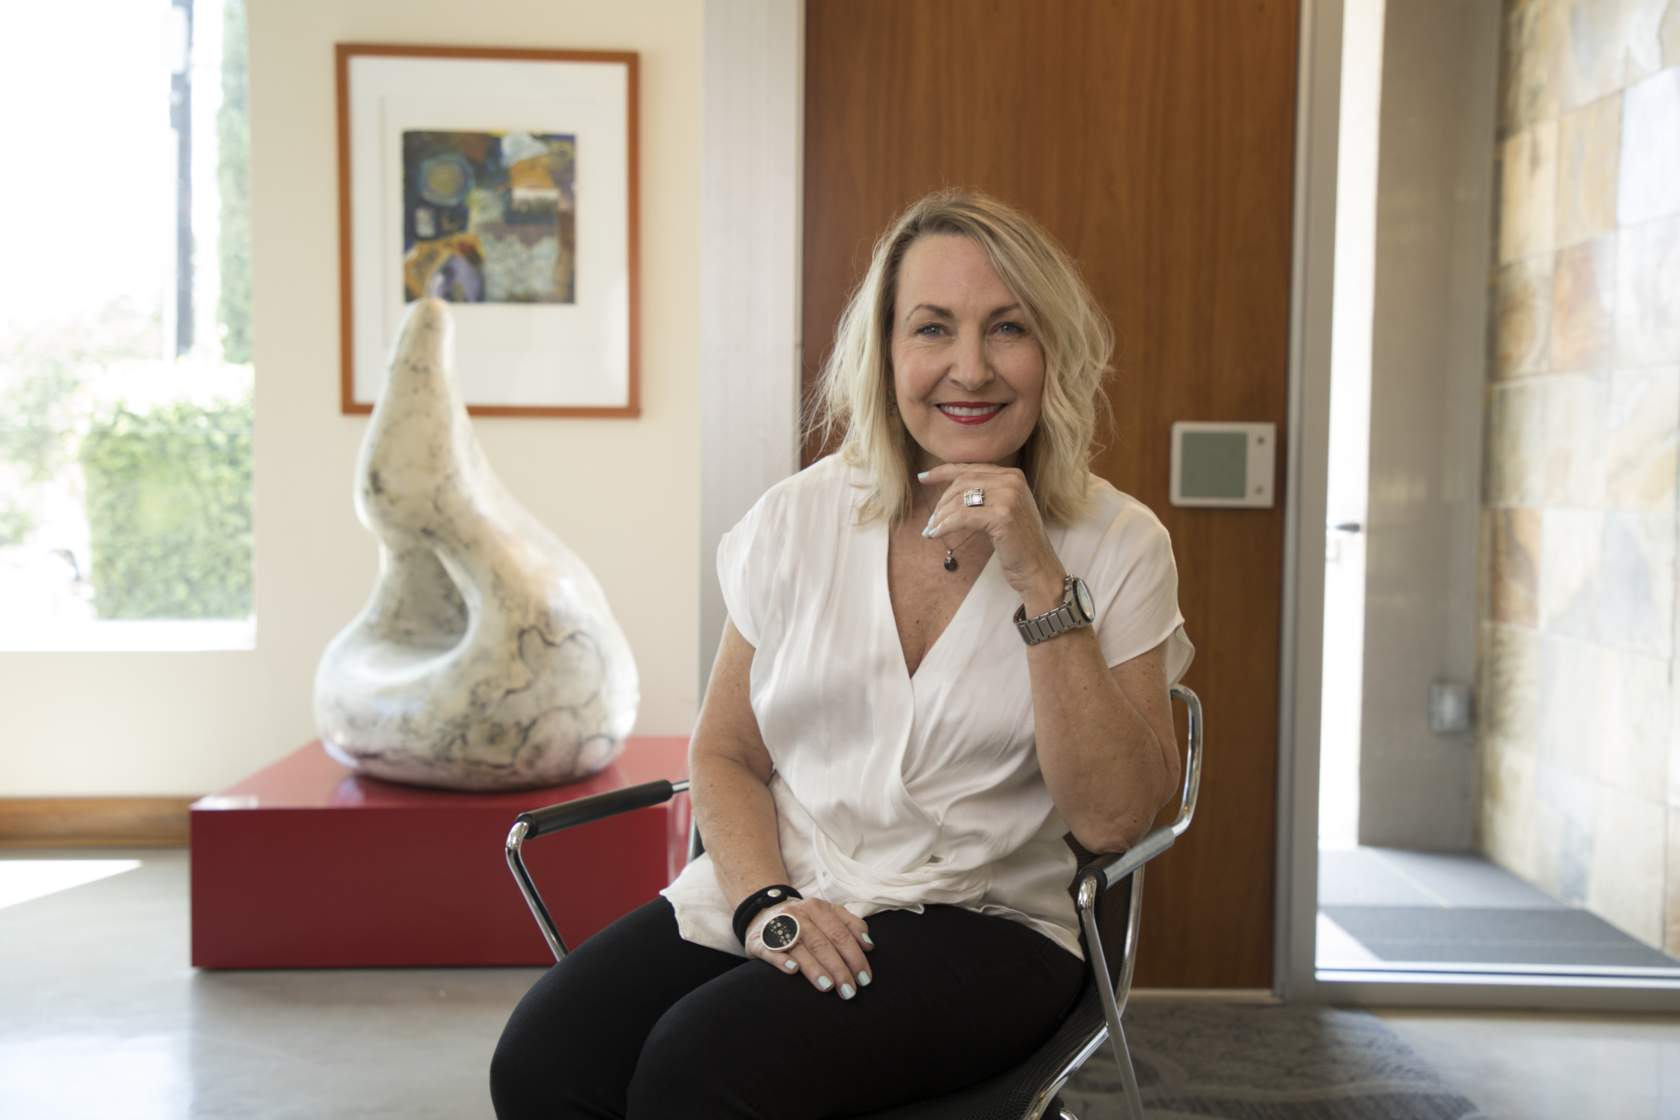 Donor, Leslie Fossler is seated in her office with a sclupture behind her